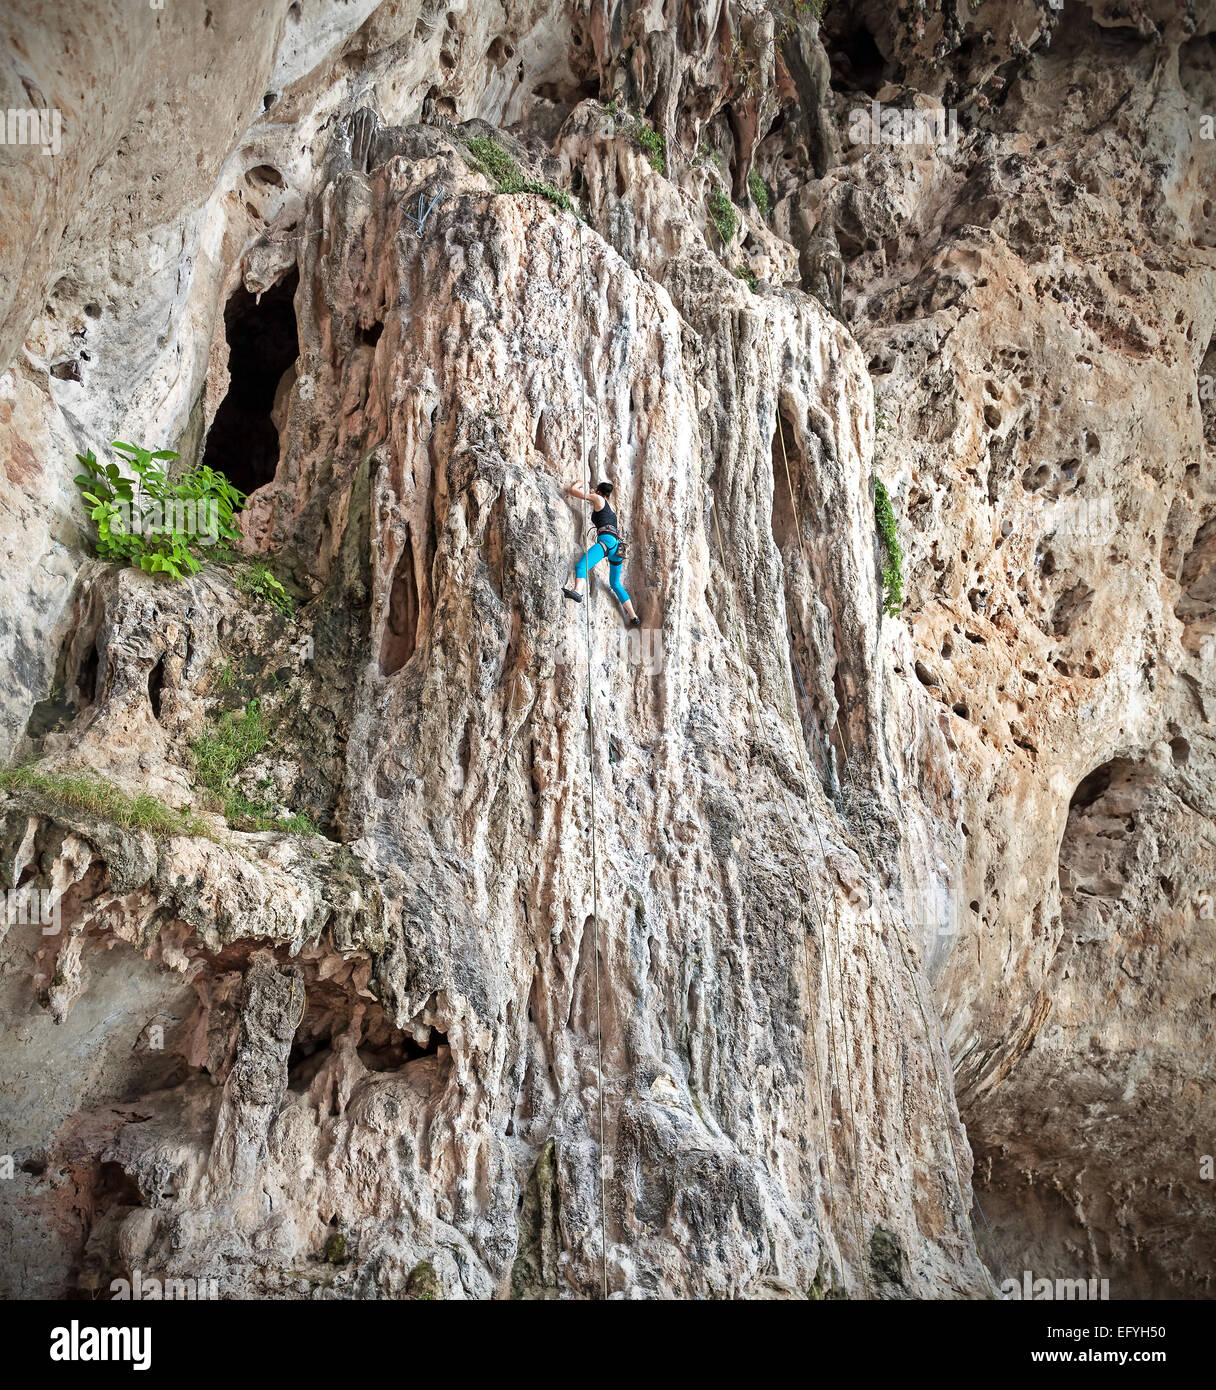 Young female rock climber on incredible wall, Railay Beach in Thailand. - Stock Image